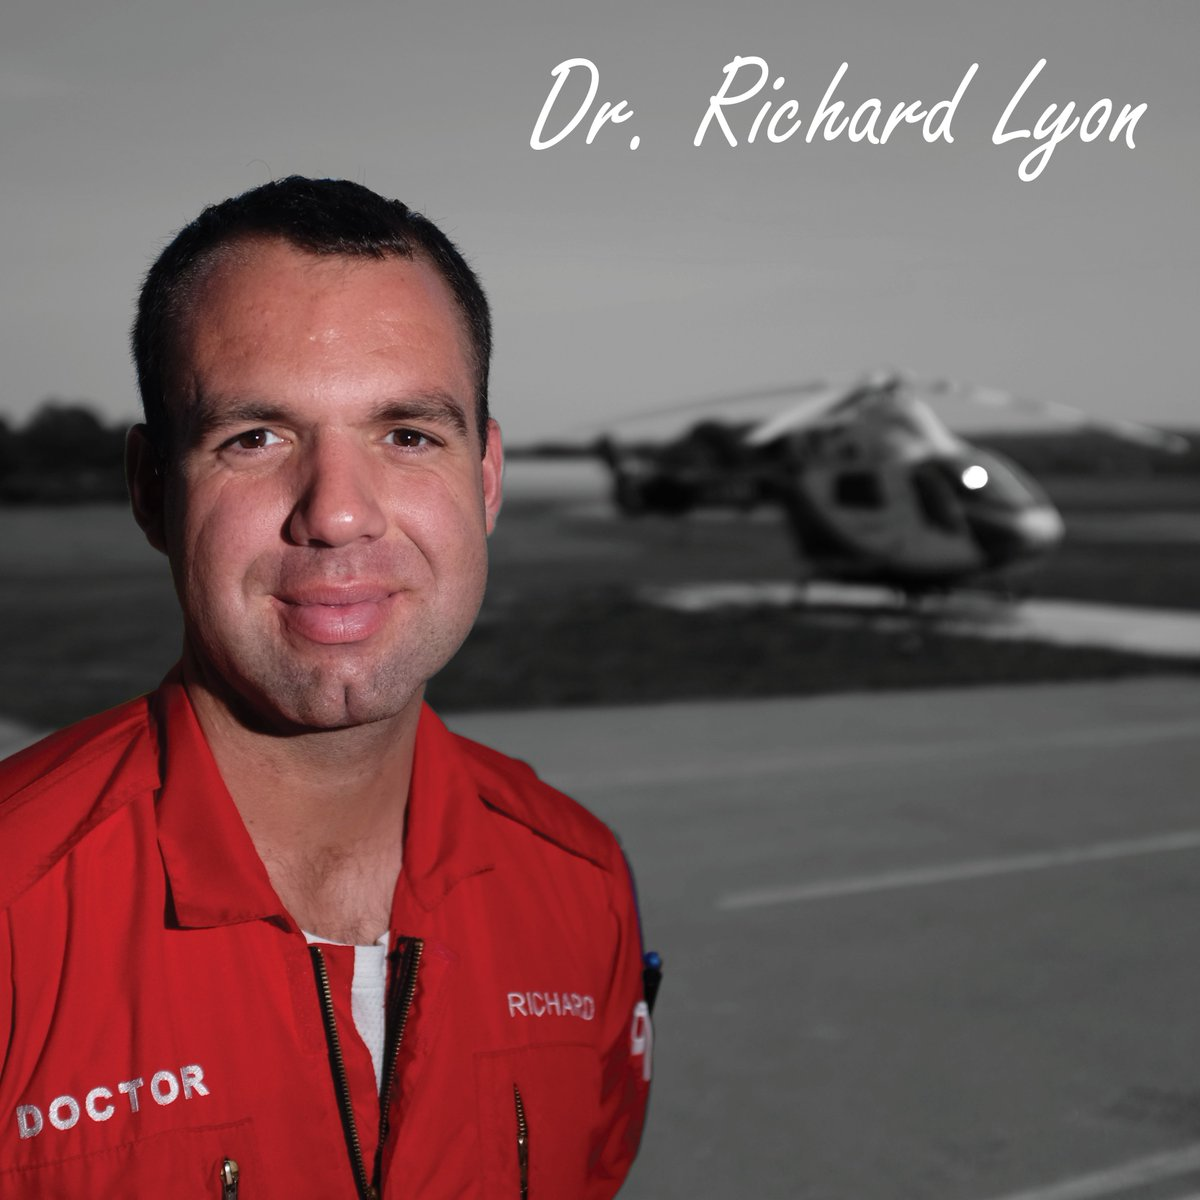 Dr. Richard Lyon explains why operating 24/7 was such a huge step forward. Full story: https://t.co/xxRVSQAaQS https://t.co/5wNsZARxjX